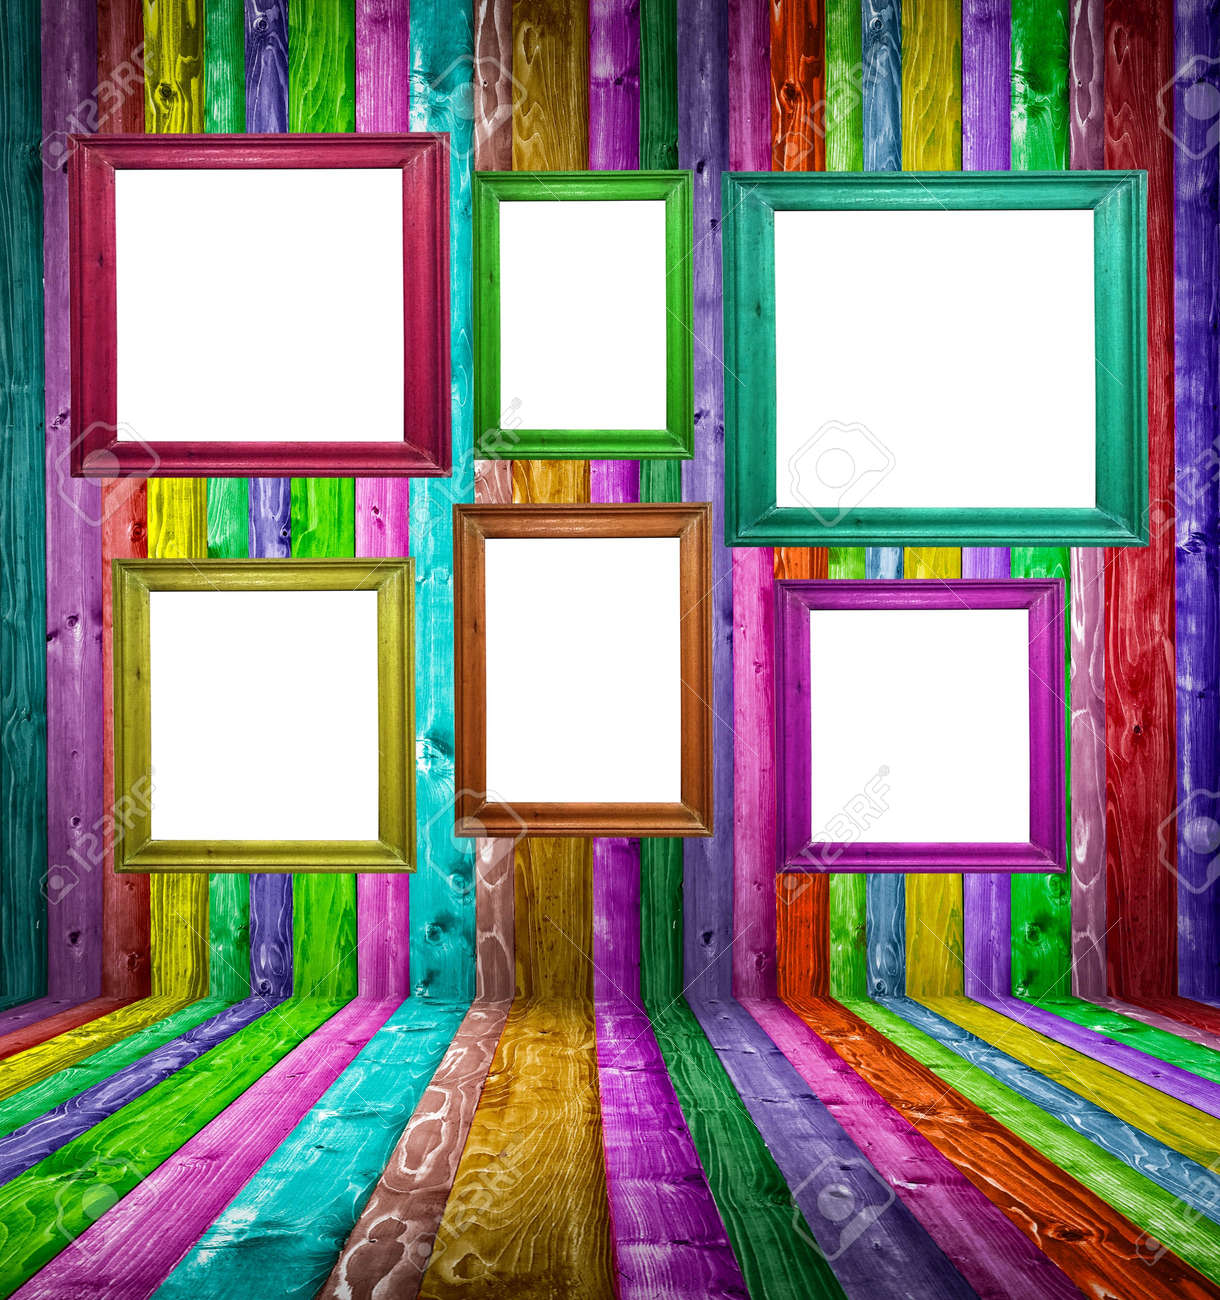 Retro colorful wood room with multicolored photo frames Stock Photo - 17677138